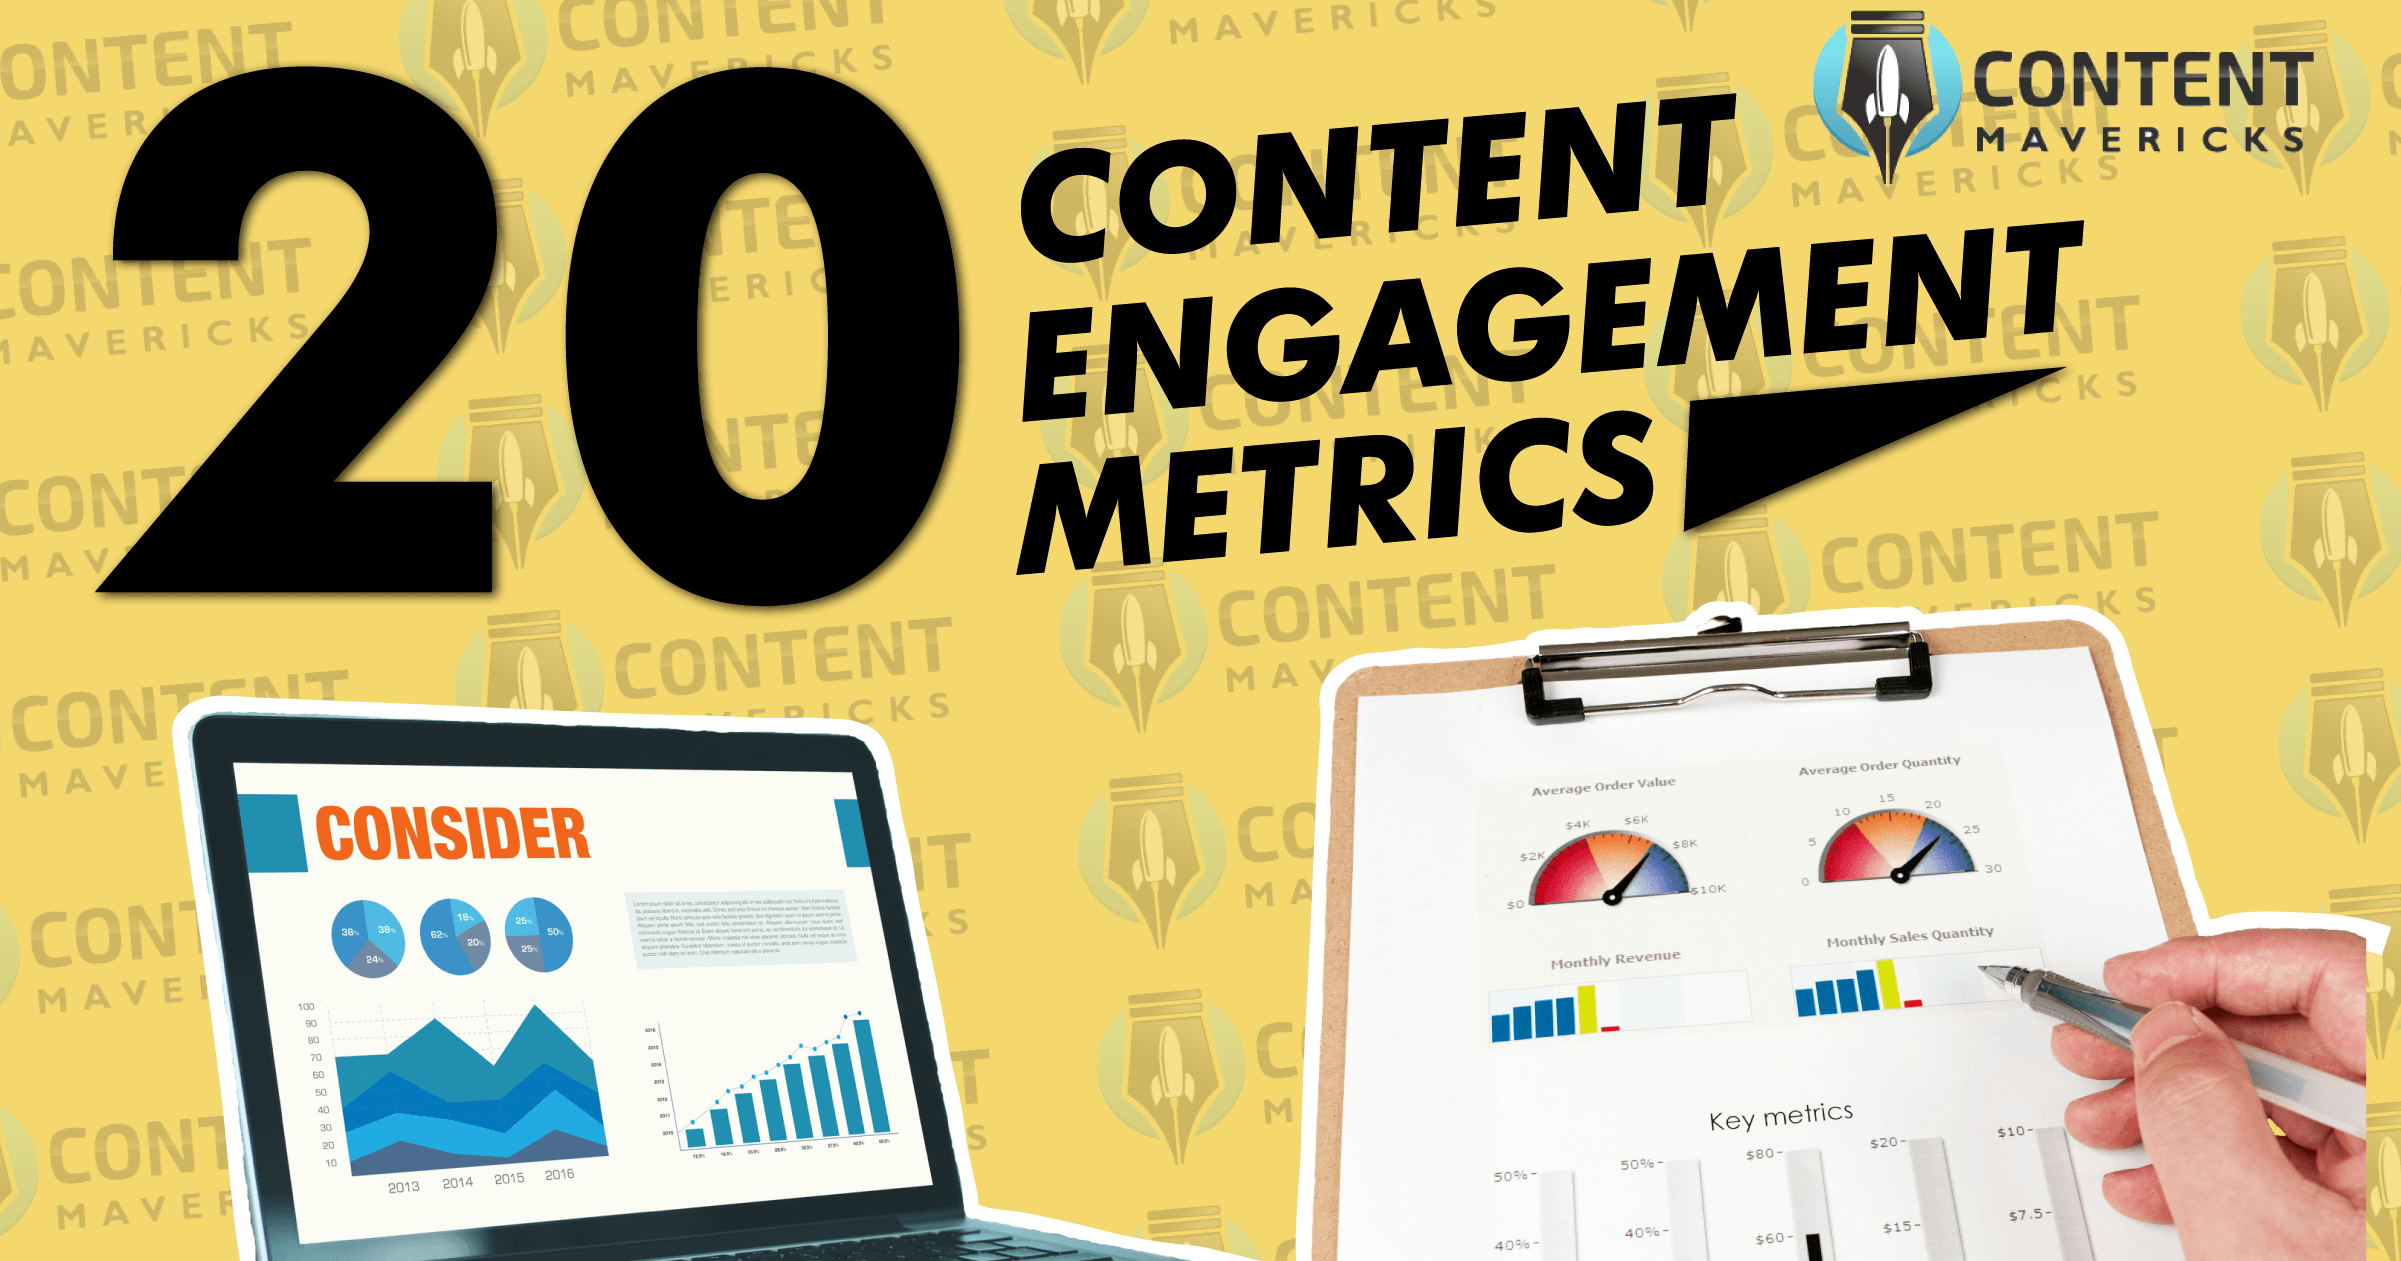 content engagement metrics featured image